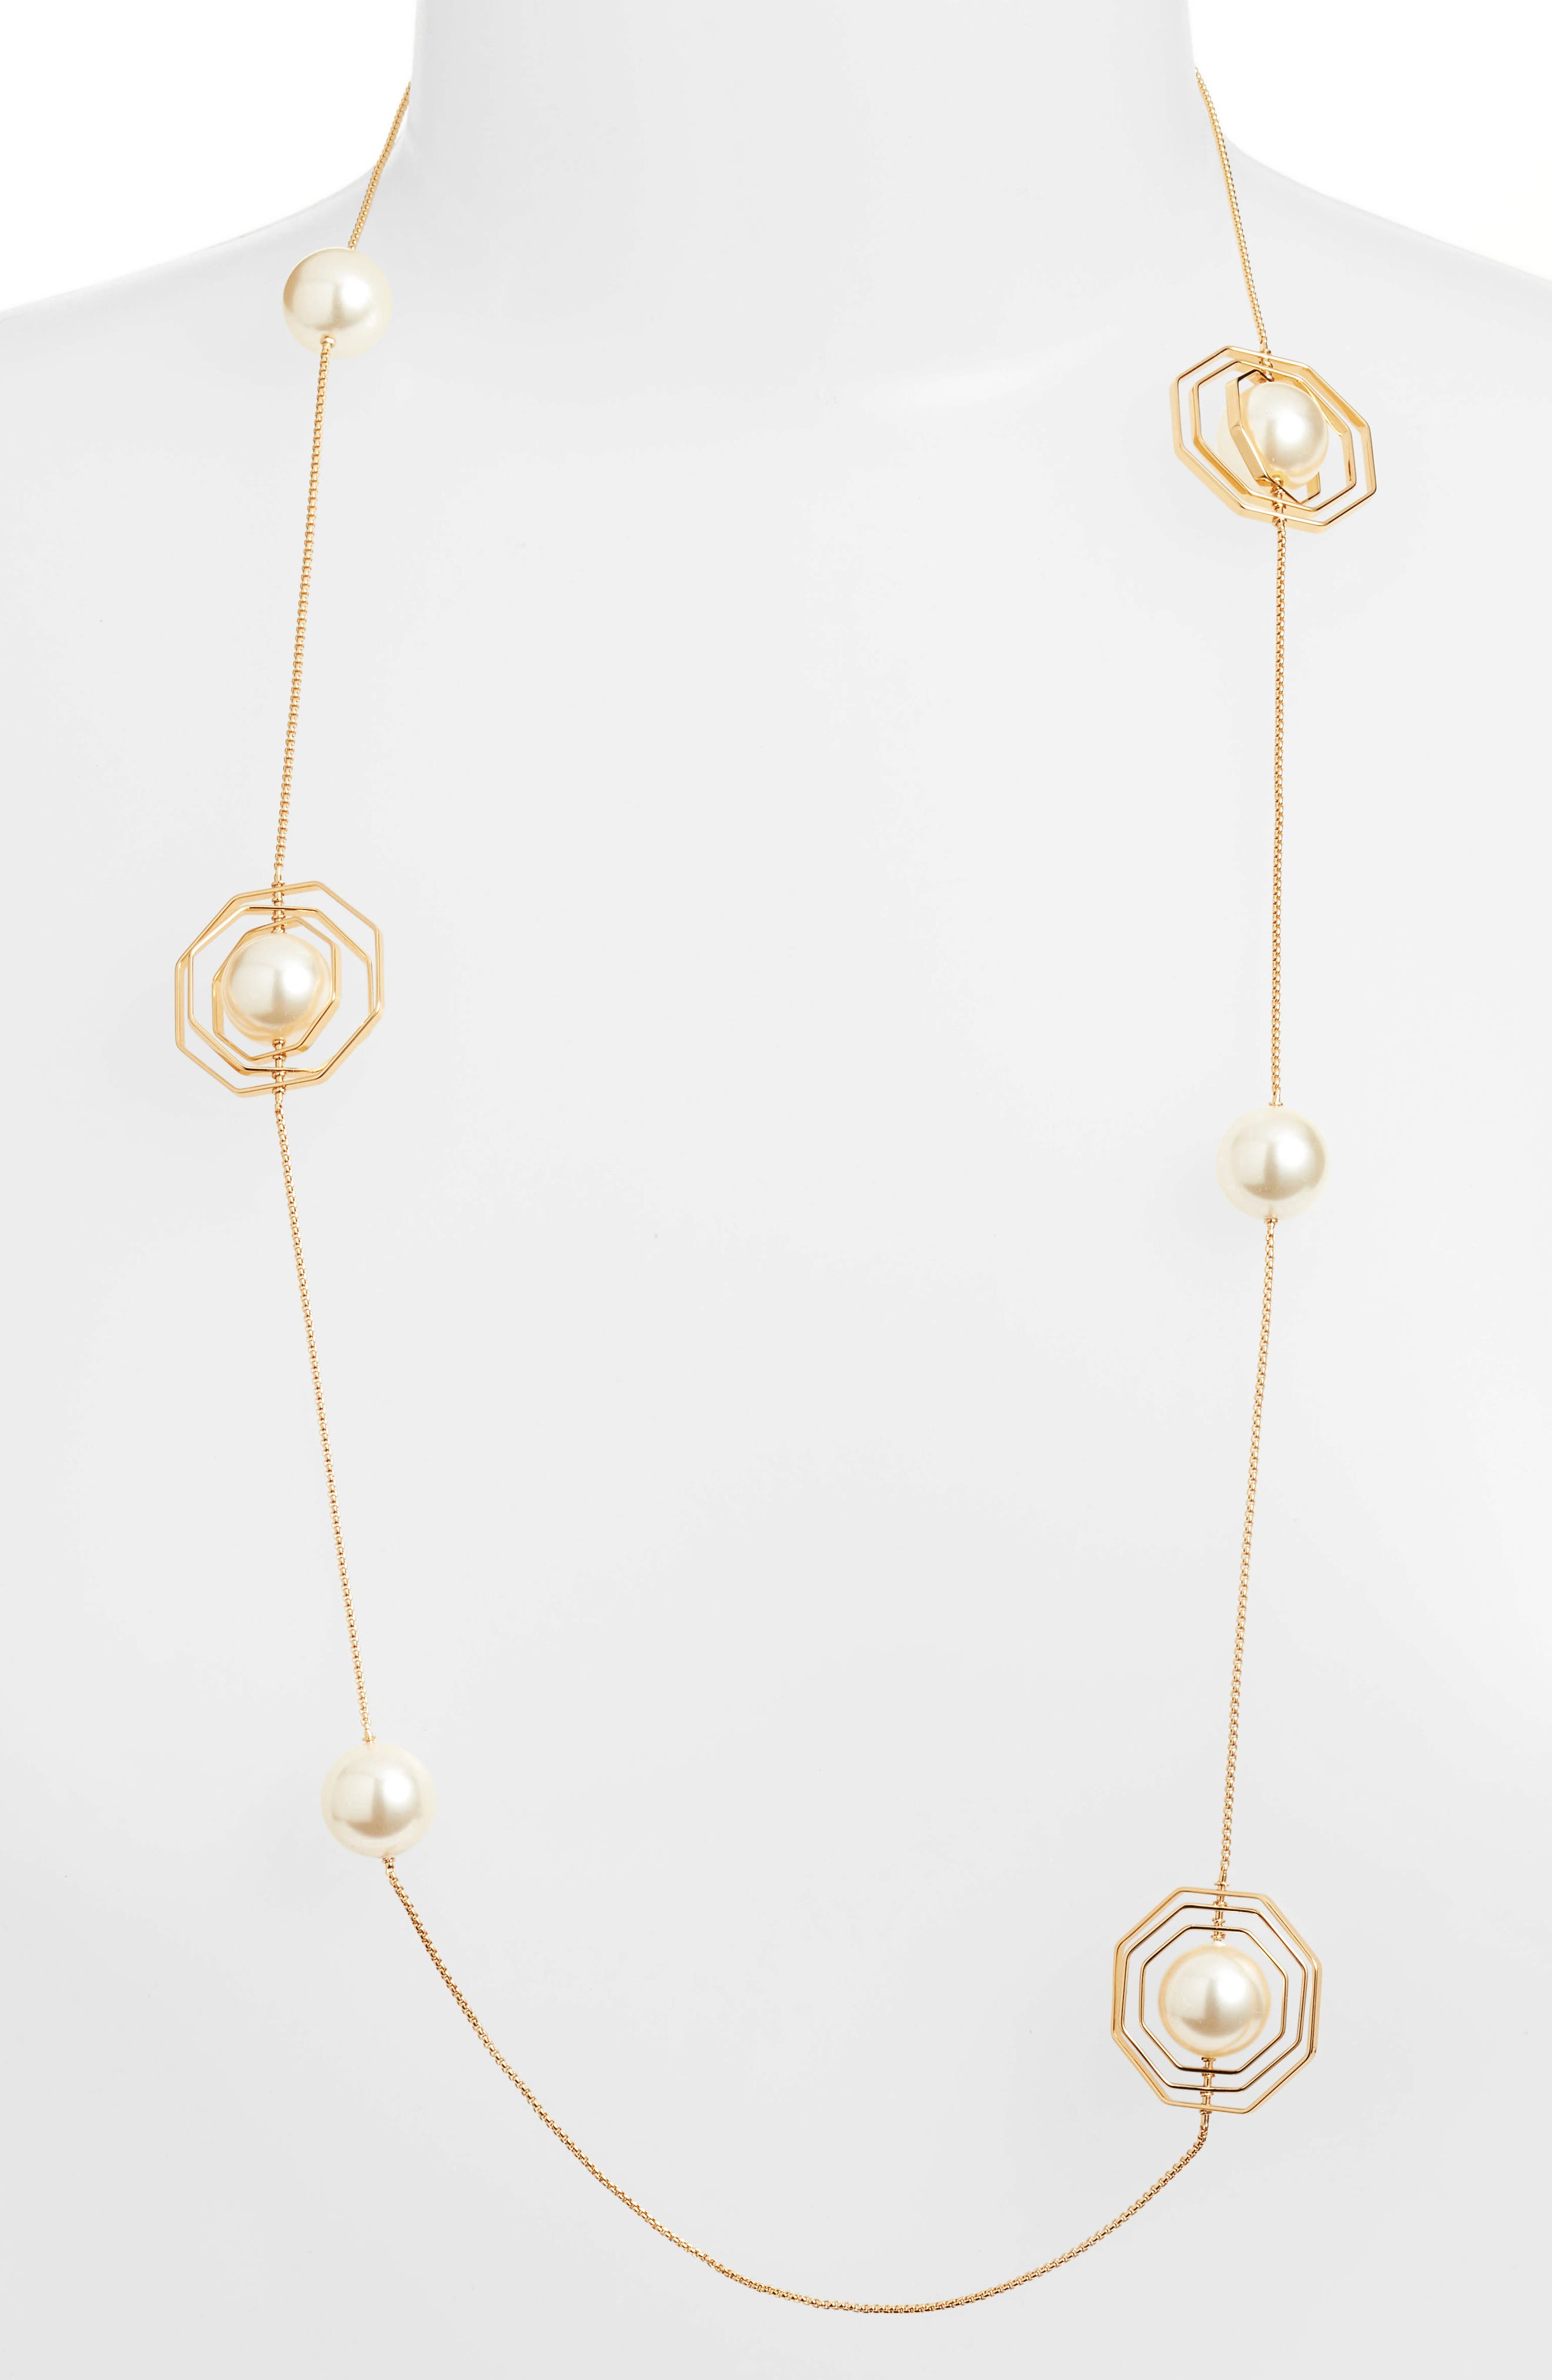 Geo Imitation Pearl Rosary Necklace,                         Main,                         color, Tory Gold/ Pearl